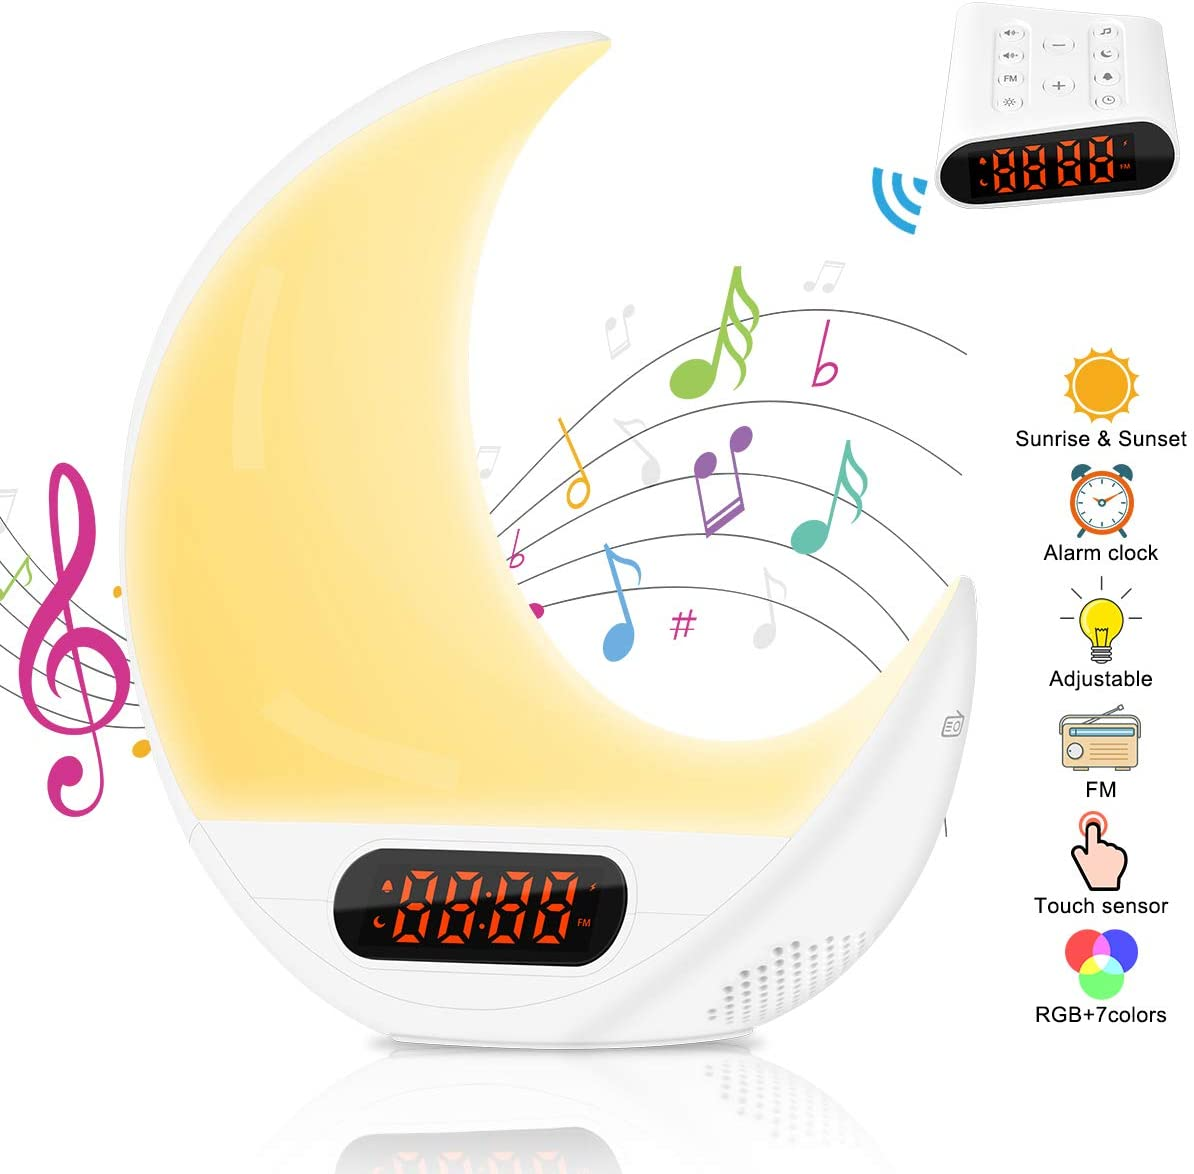 AsperX Wake Up Light, Alarm Clock Colourful Sunrise Sunset Simulation Bedside Lamp with FM Radio, 7 Nature Sounds 7 Colors Changeable and Touch Control Function LED Light,Remote Light Alarm Clock